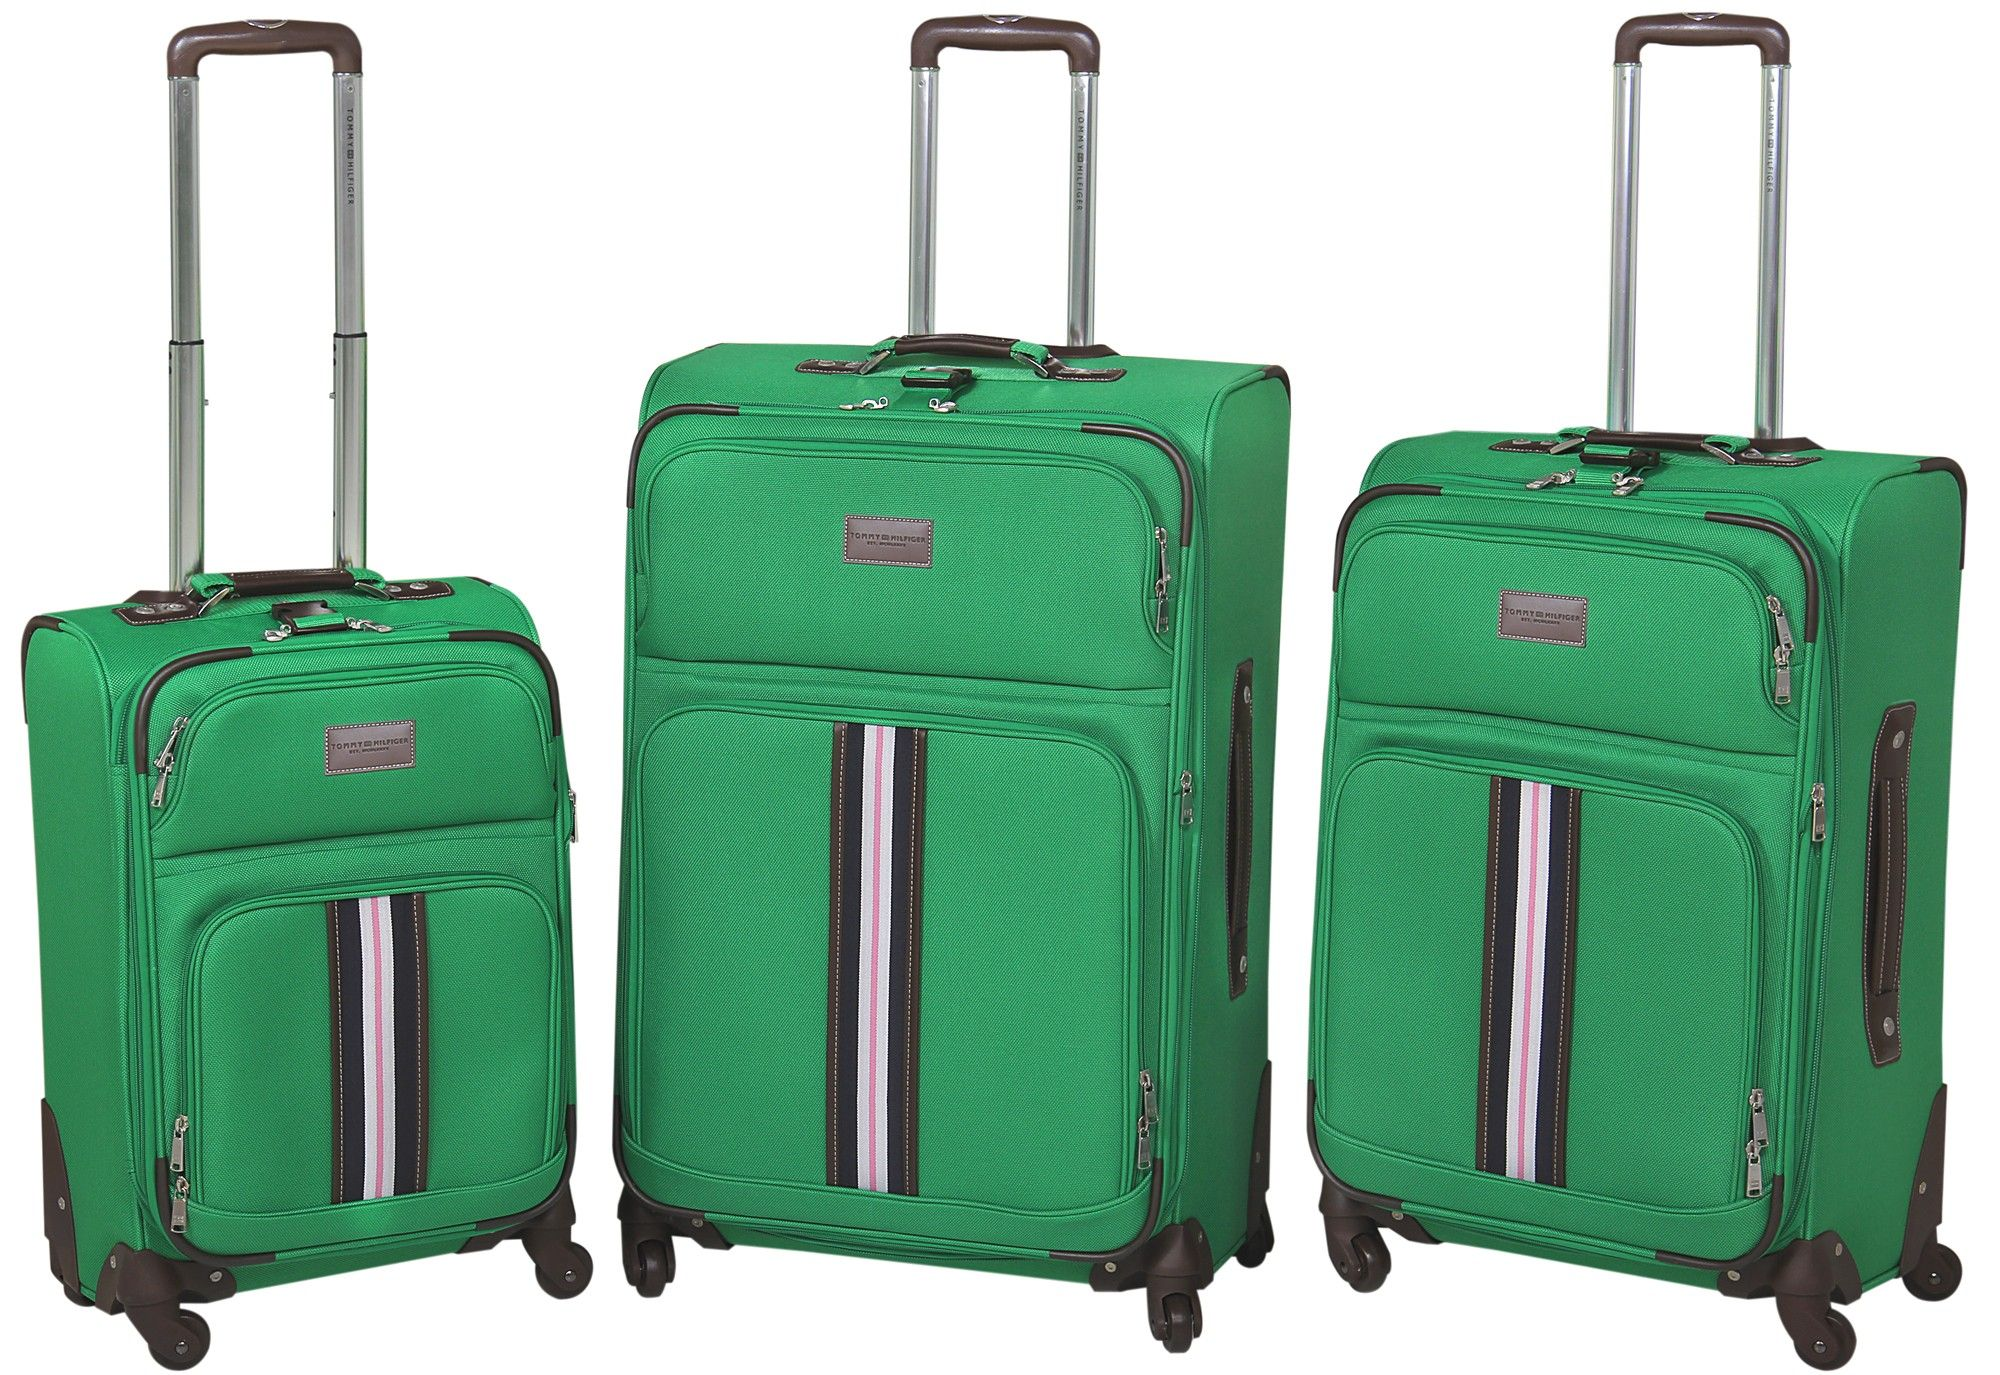 f6f89af03e93 The Tommy Hilfiger Classic Collection of luggage, shown in green ...